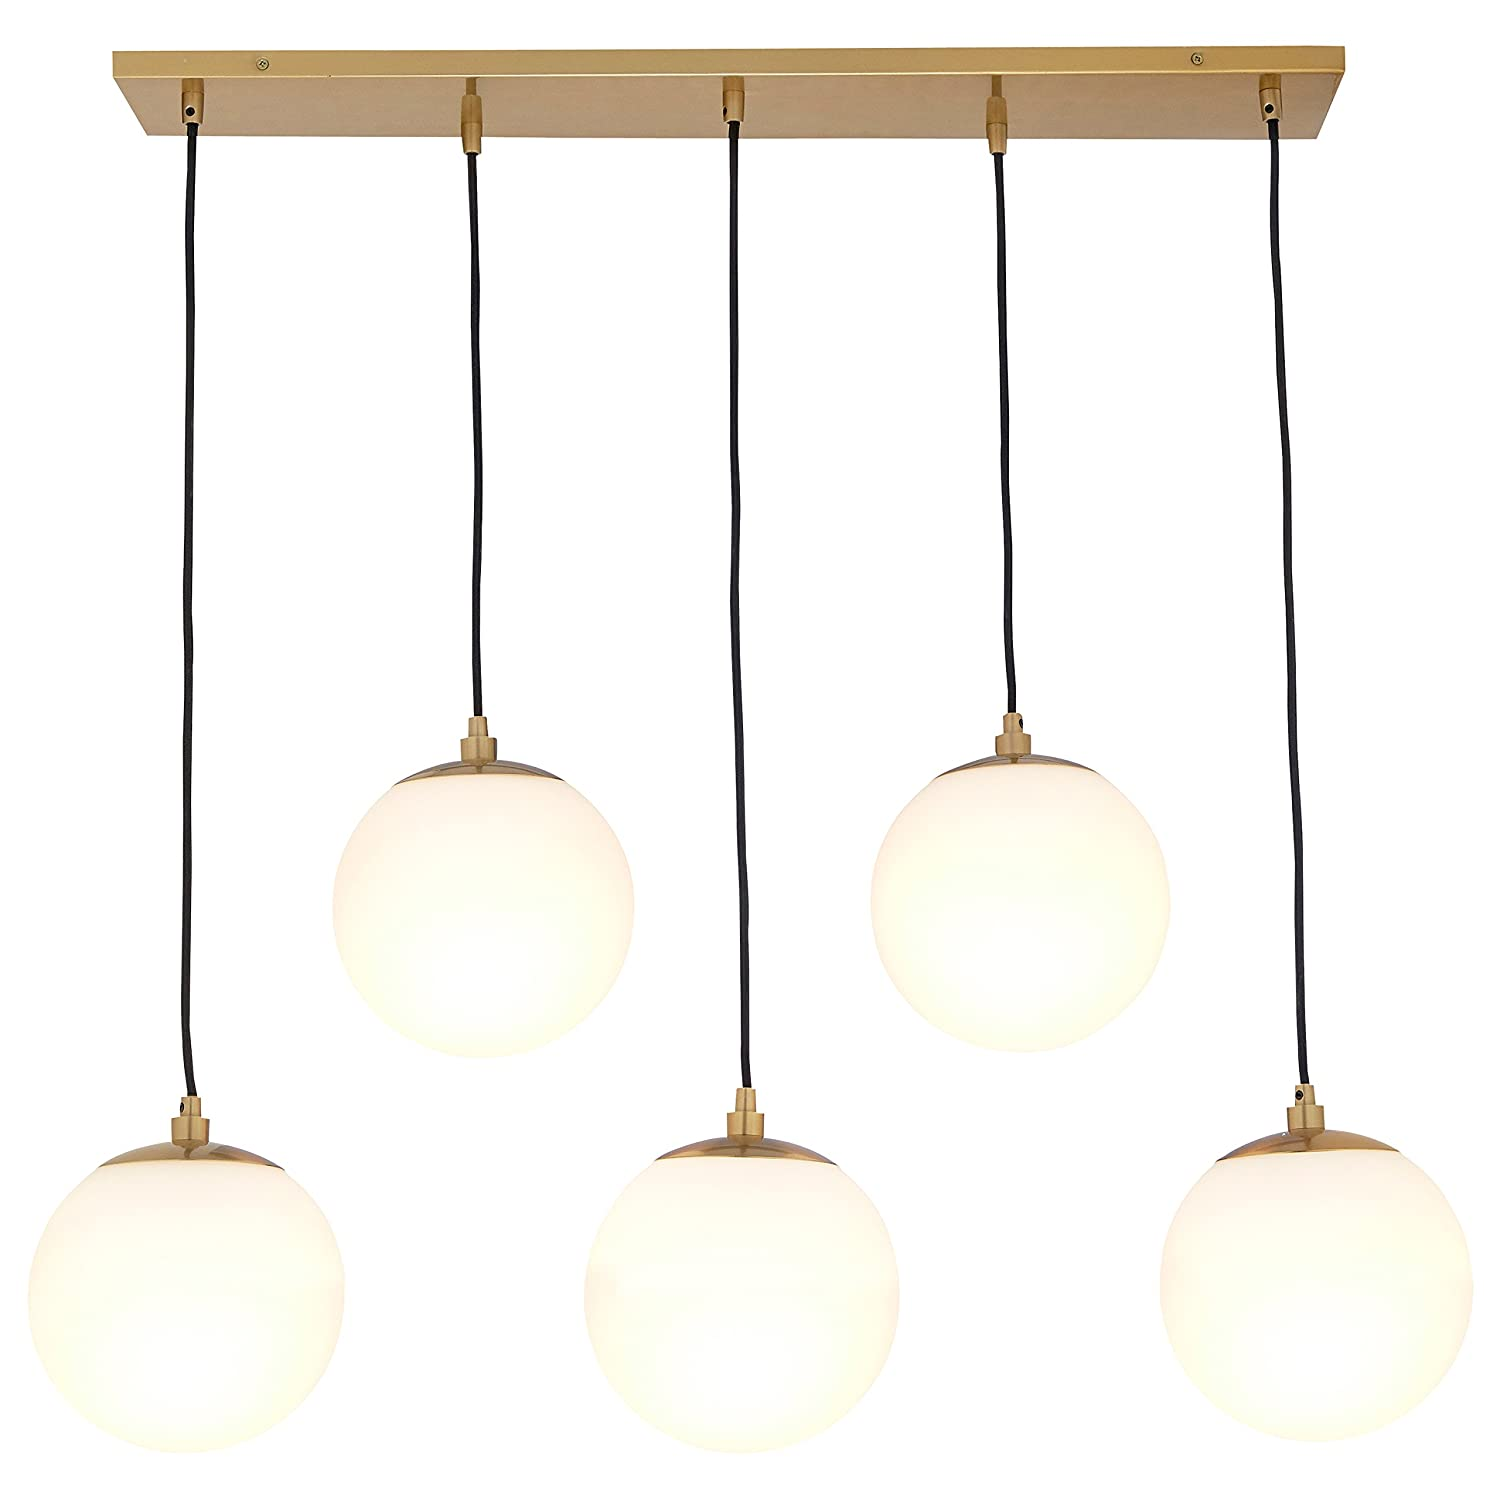 36H Rivet Eclipse 5-Globe Brass Pendant Chandelier Brass with Frosted Glass Globes